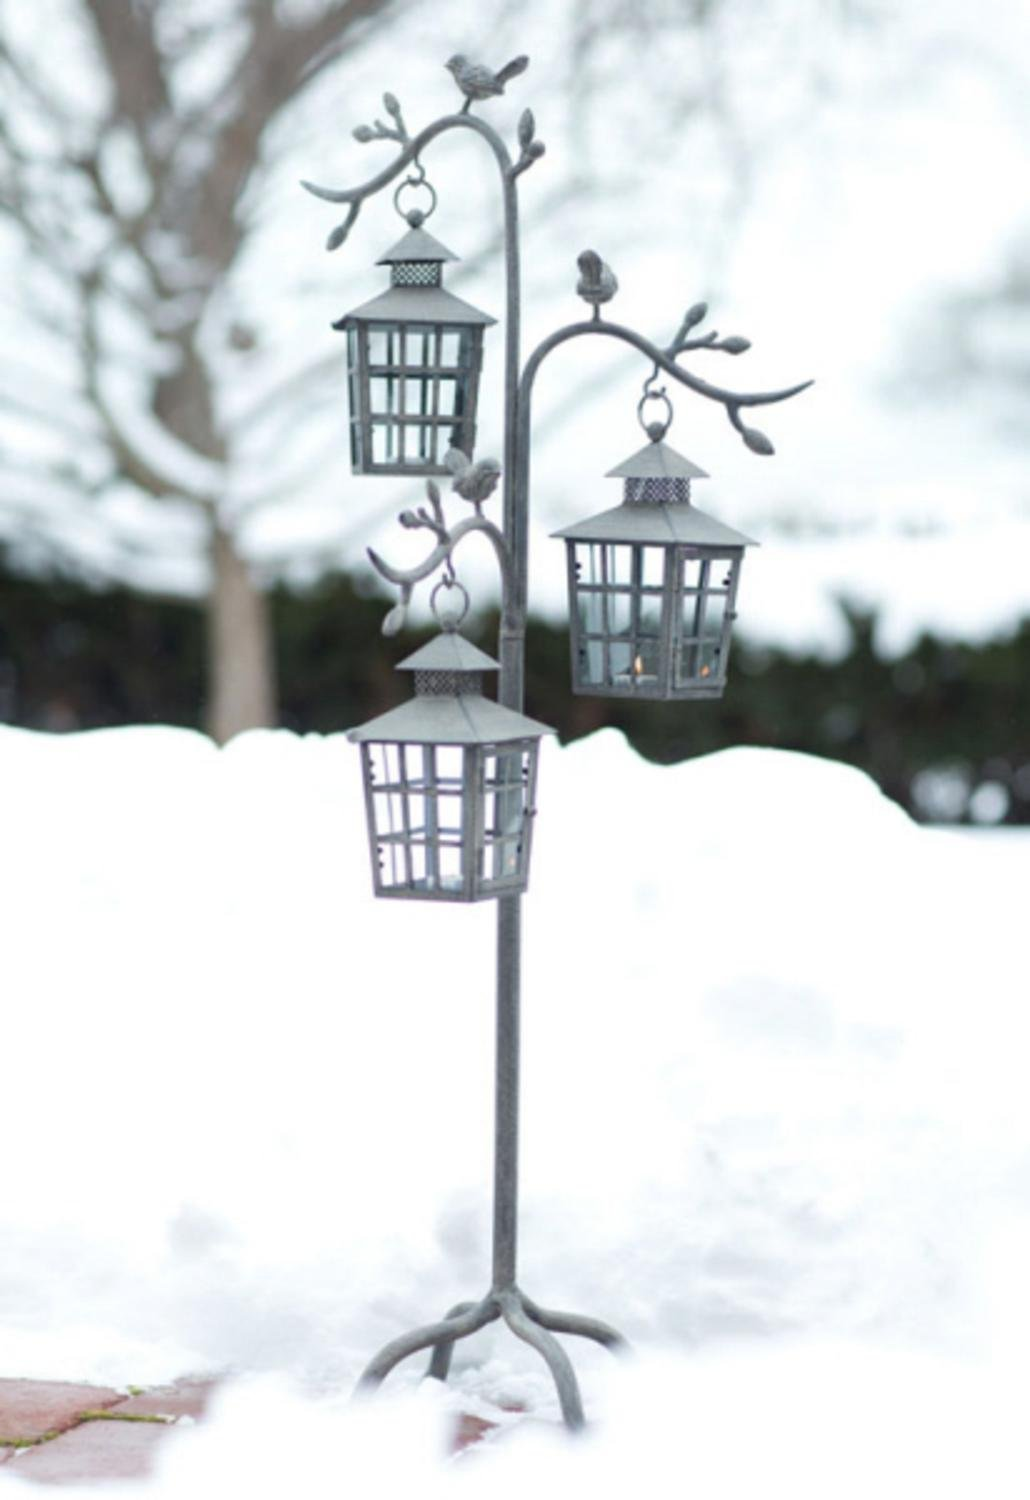 42'' Weathered Gray Decorative Outdoor Votive Candle Holder Lantern Tree with Bird Accents